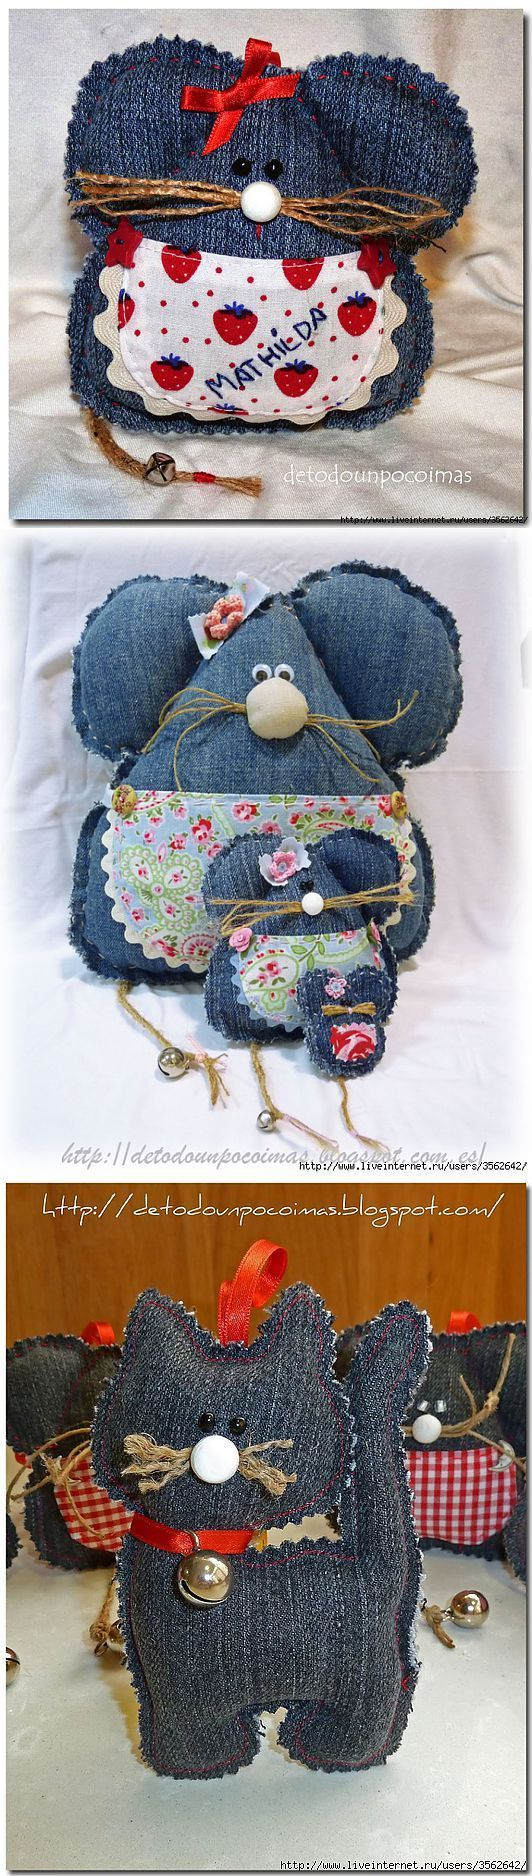 606 best denim crafts images on pinterest jean crafts for Denim craft projects